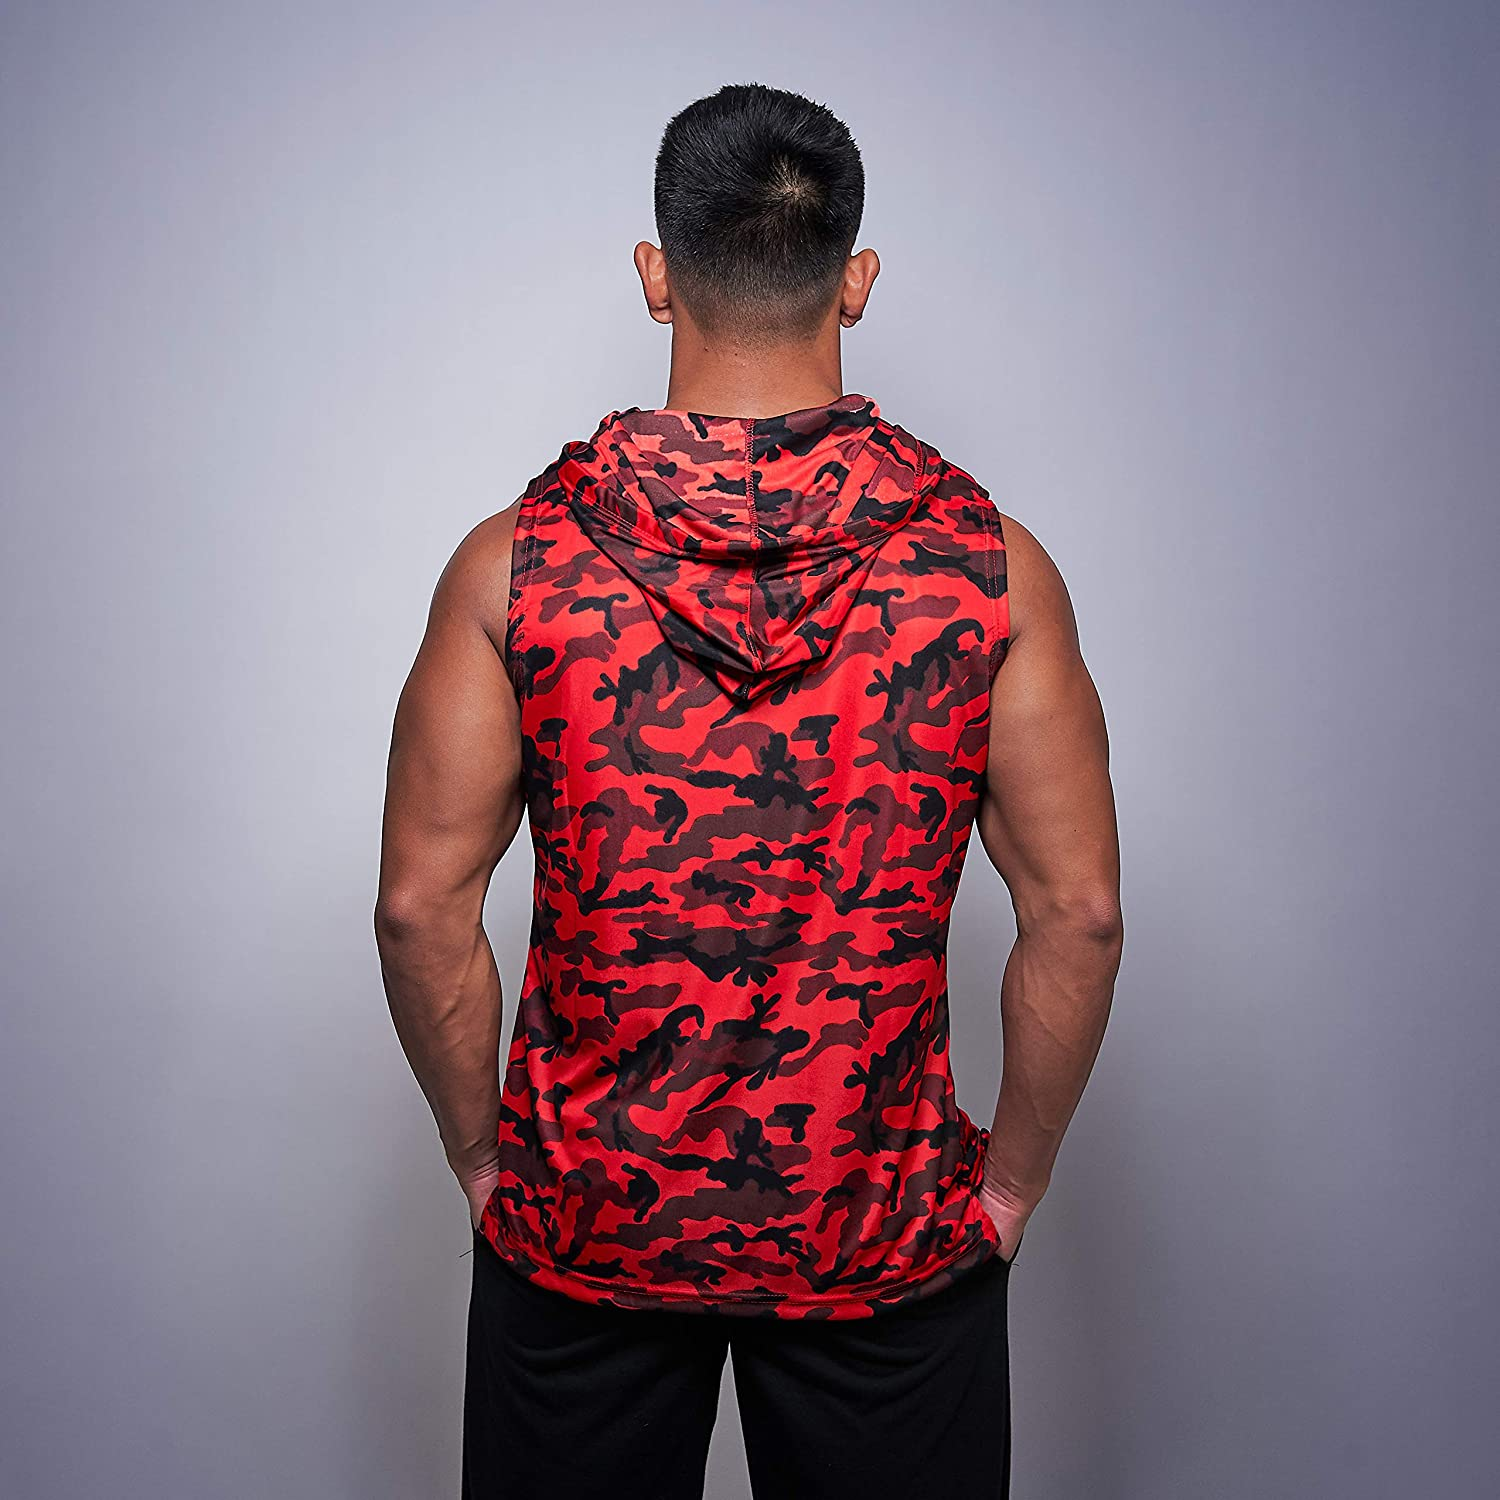 Mens Red Camo Gym Hoodie Bodybuilding Muscle Army Sleeveless Workout Top